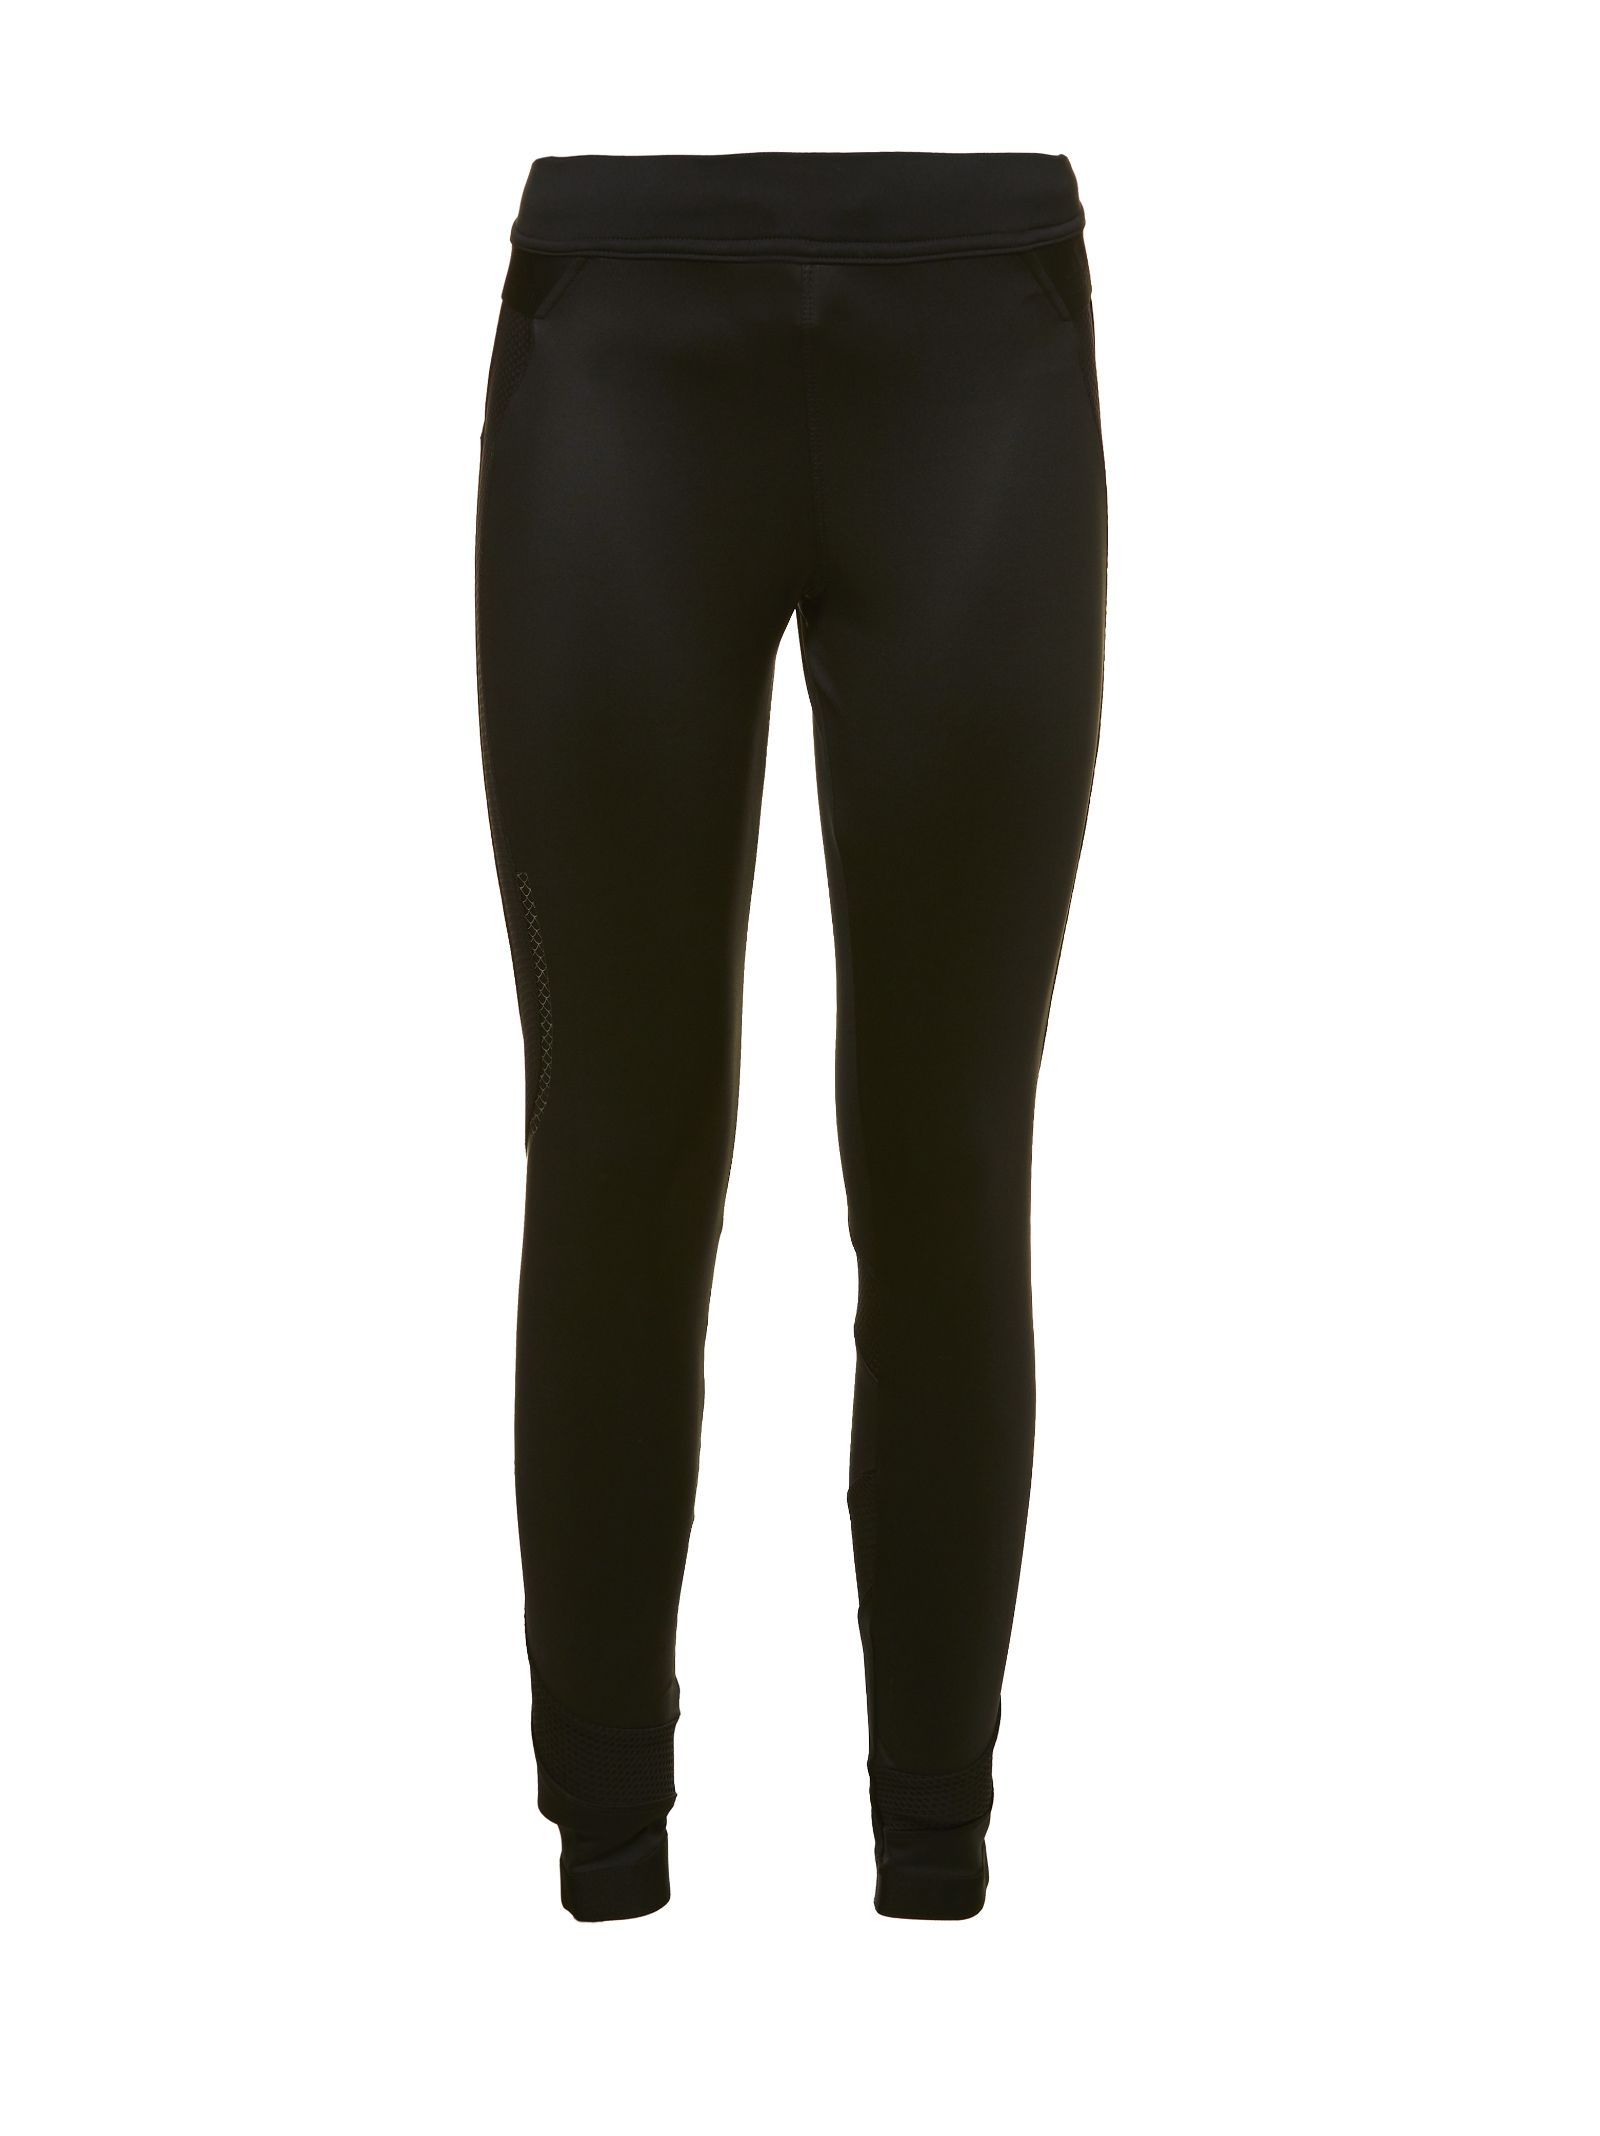 4a97f7a0d5f9 Adidas by Stella McCartney Performance Leggings - Nero ...